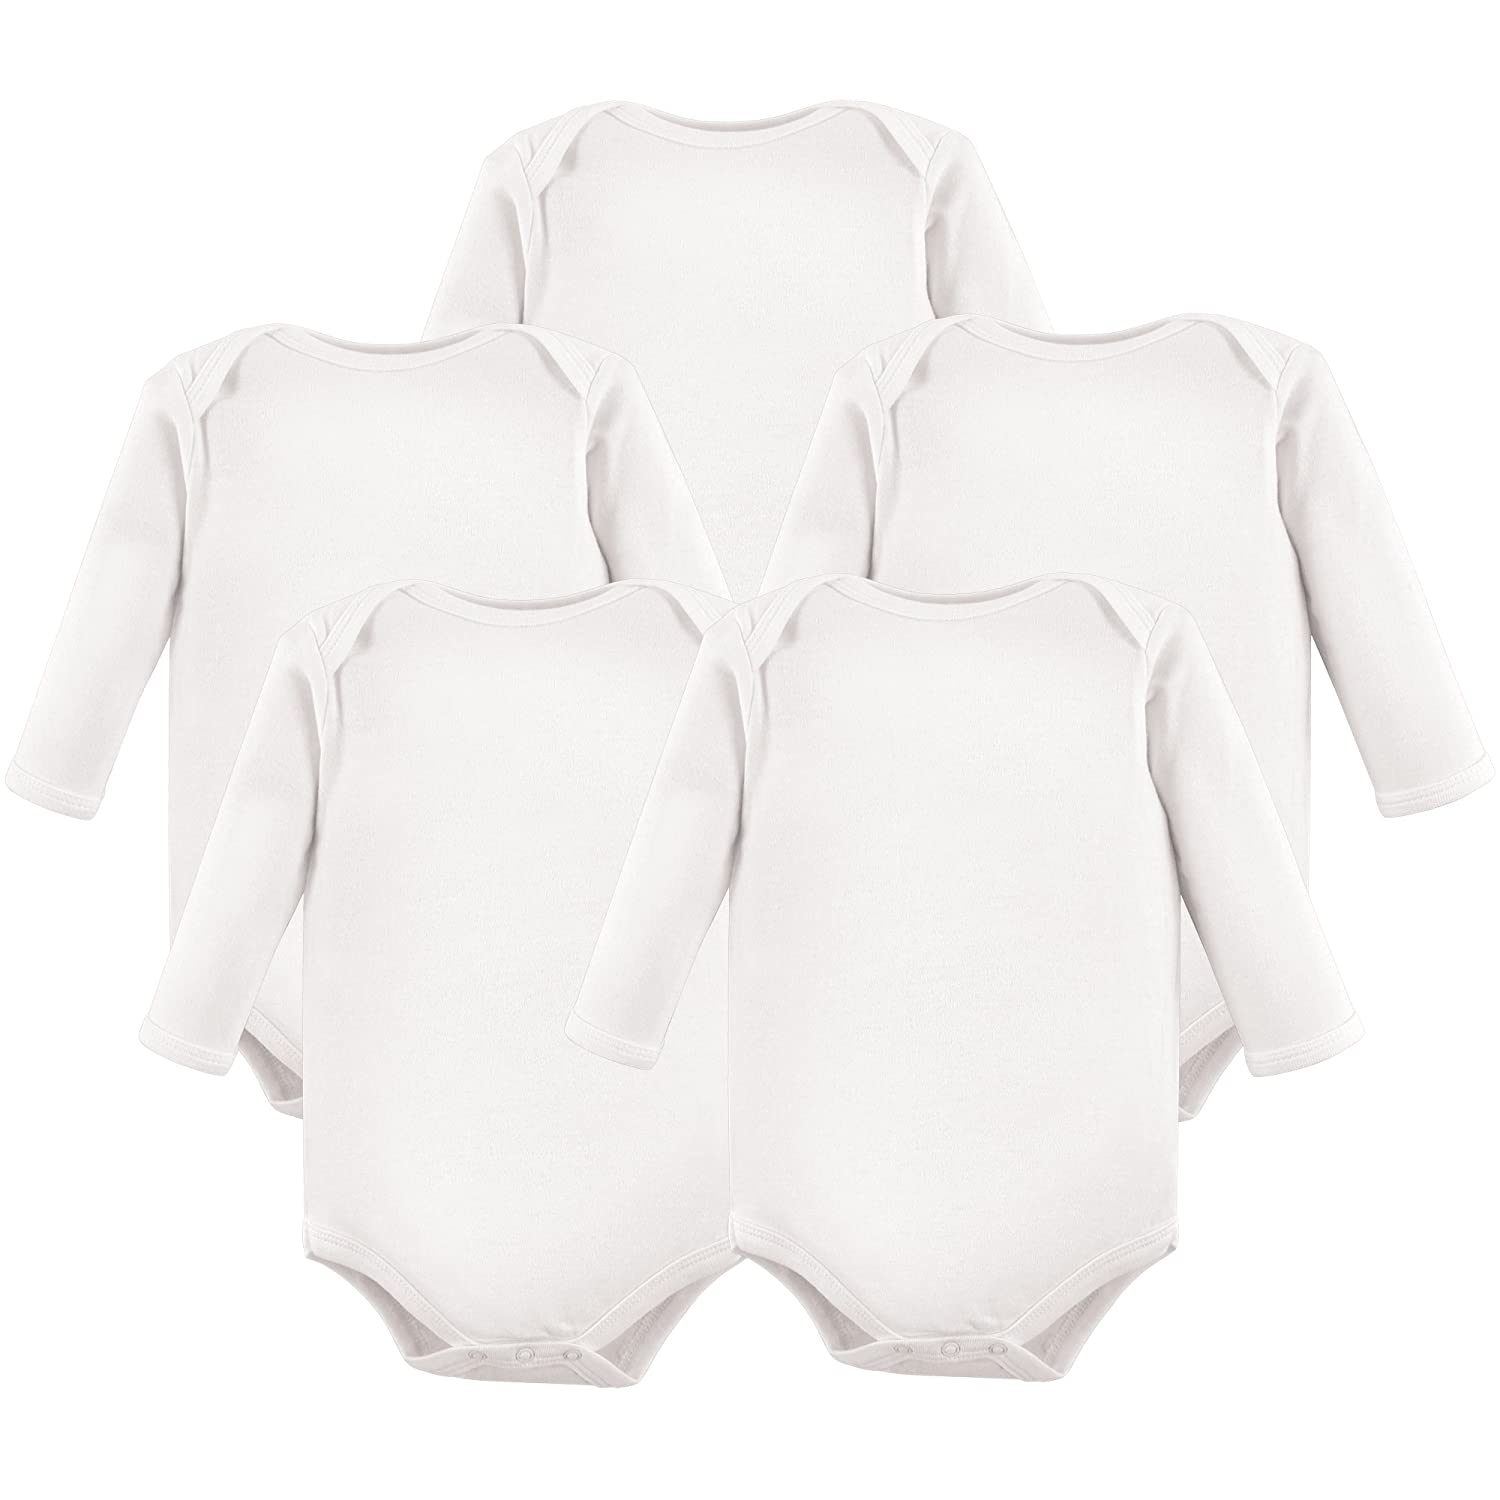 Hudson Baby Girls' Long Sleeve Bodysuits, 10155020